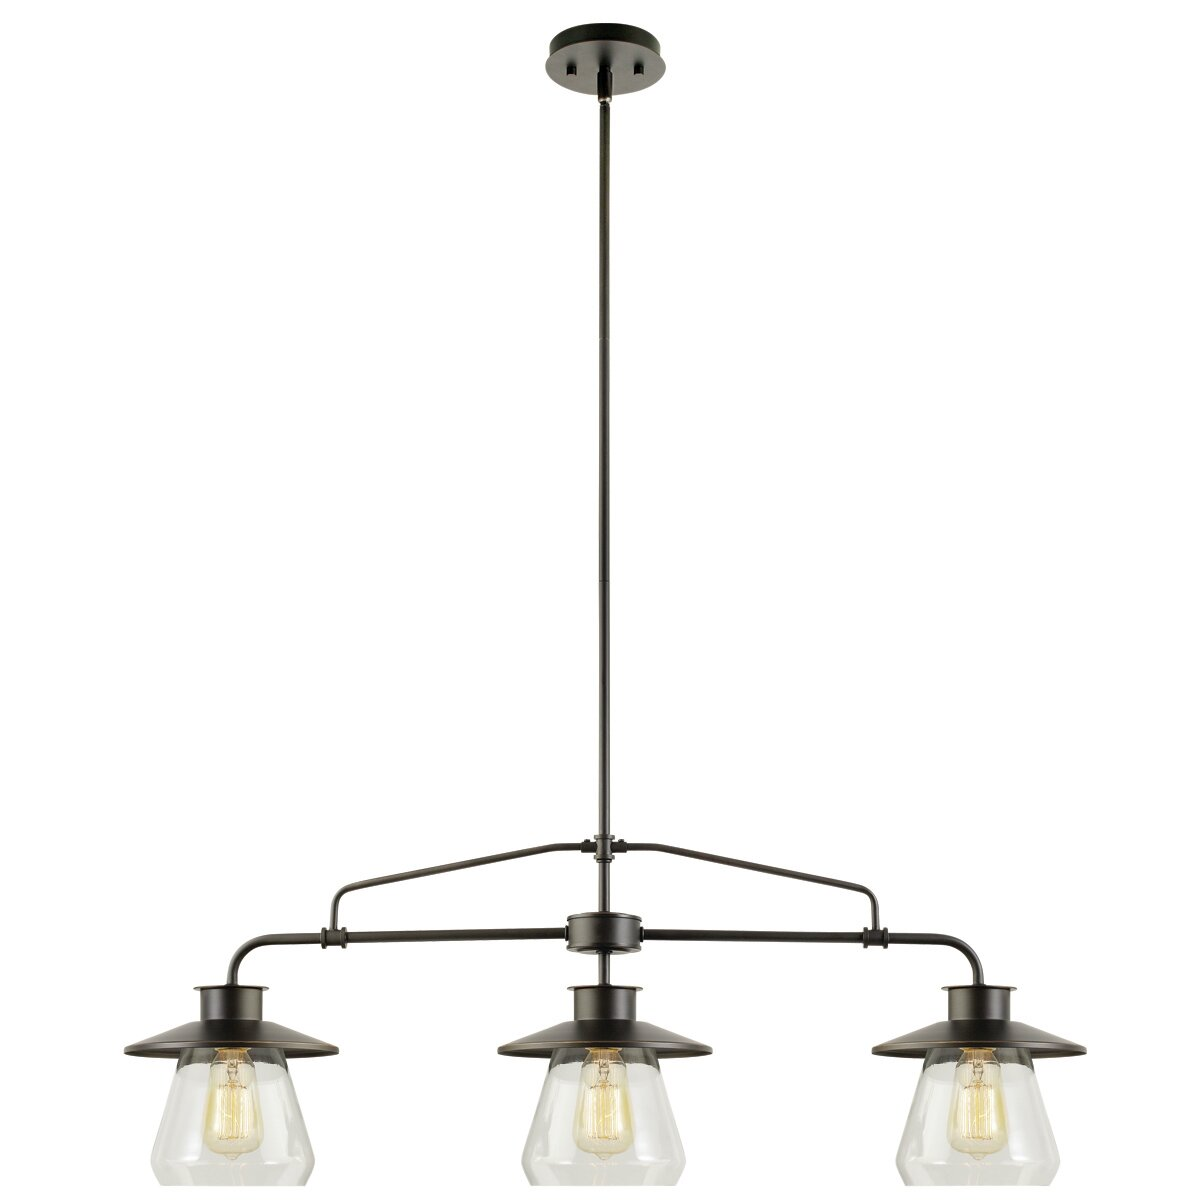 Farmhouse Finds 20 Light Fixtures under $250 Something Rare and Wonderful